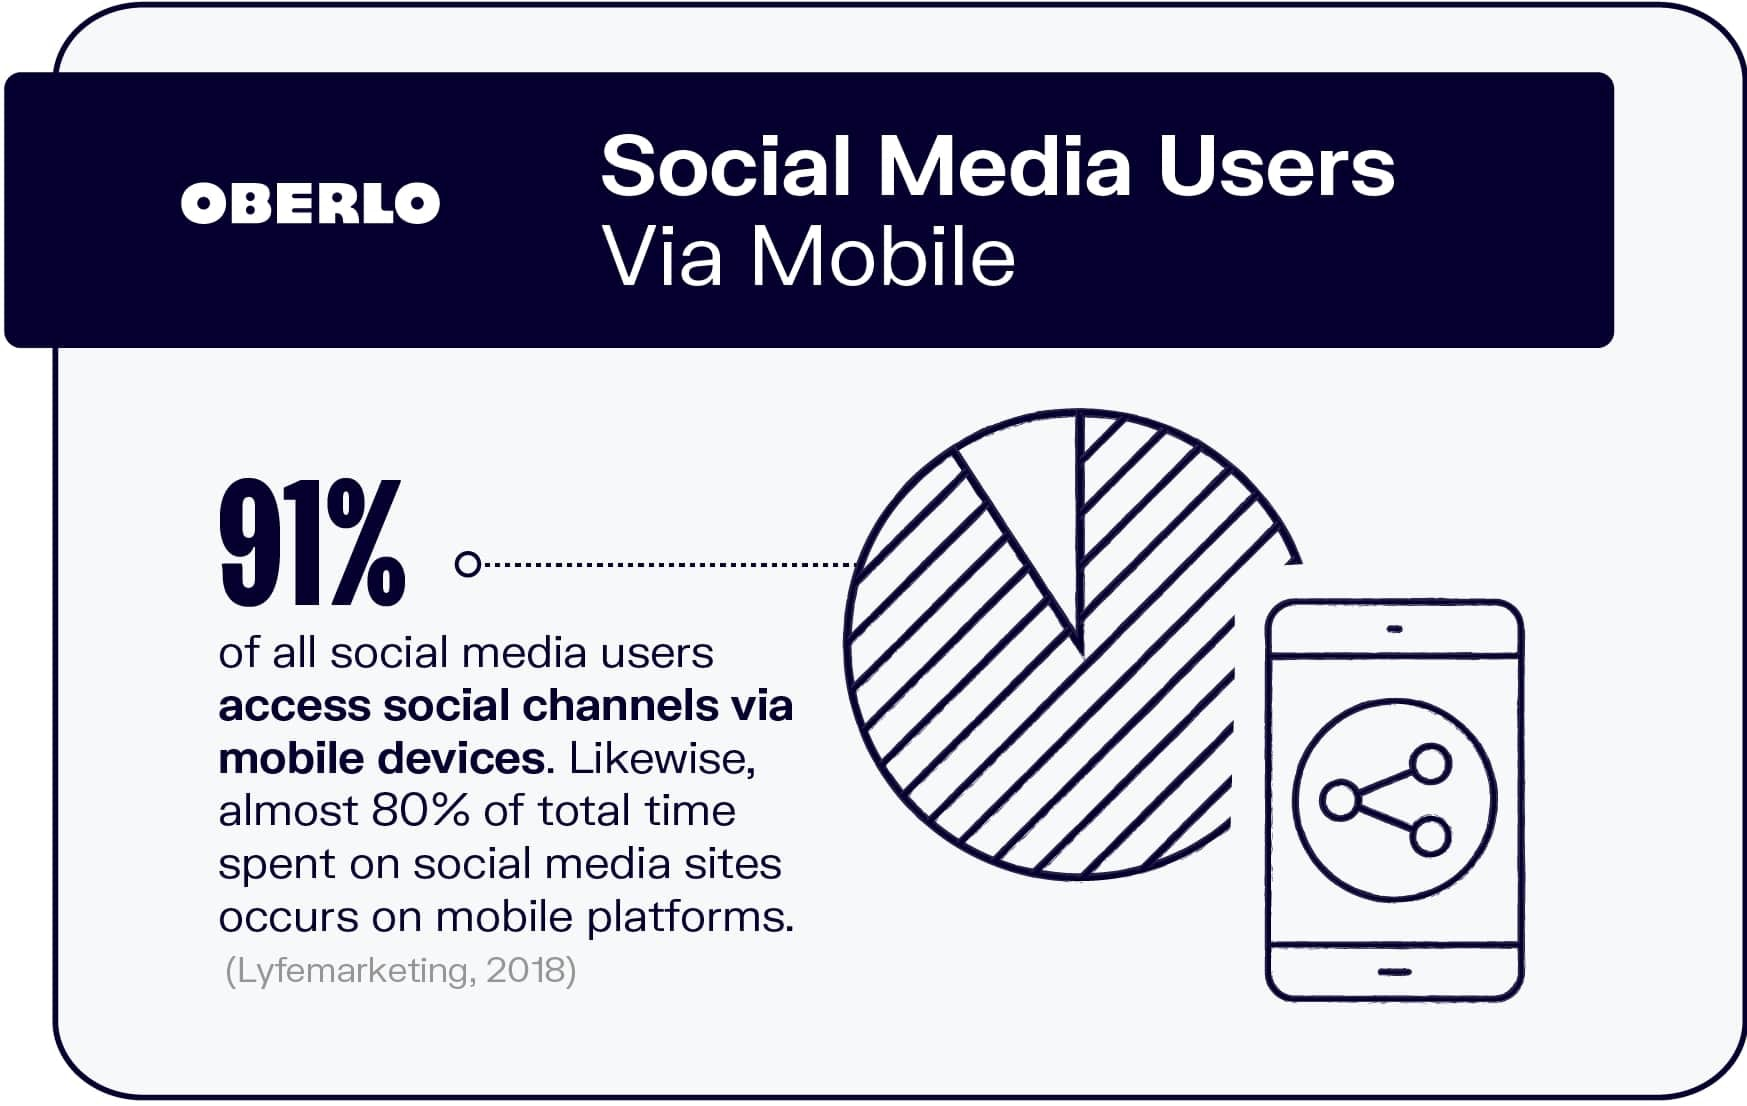 Social Media Users Via Mobile